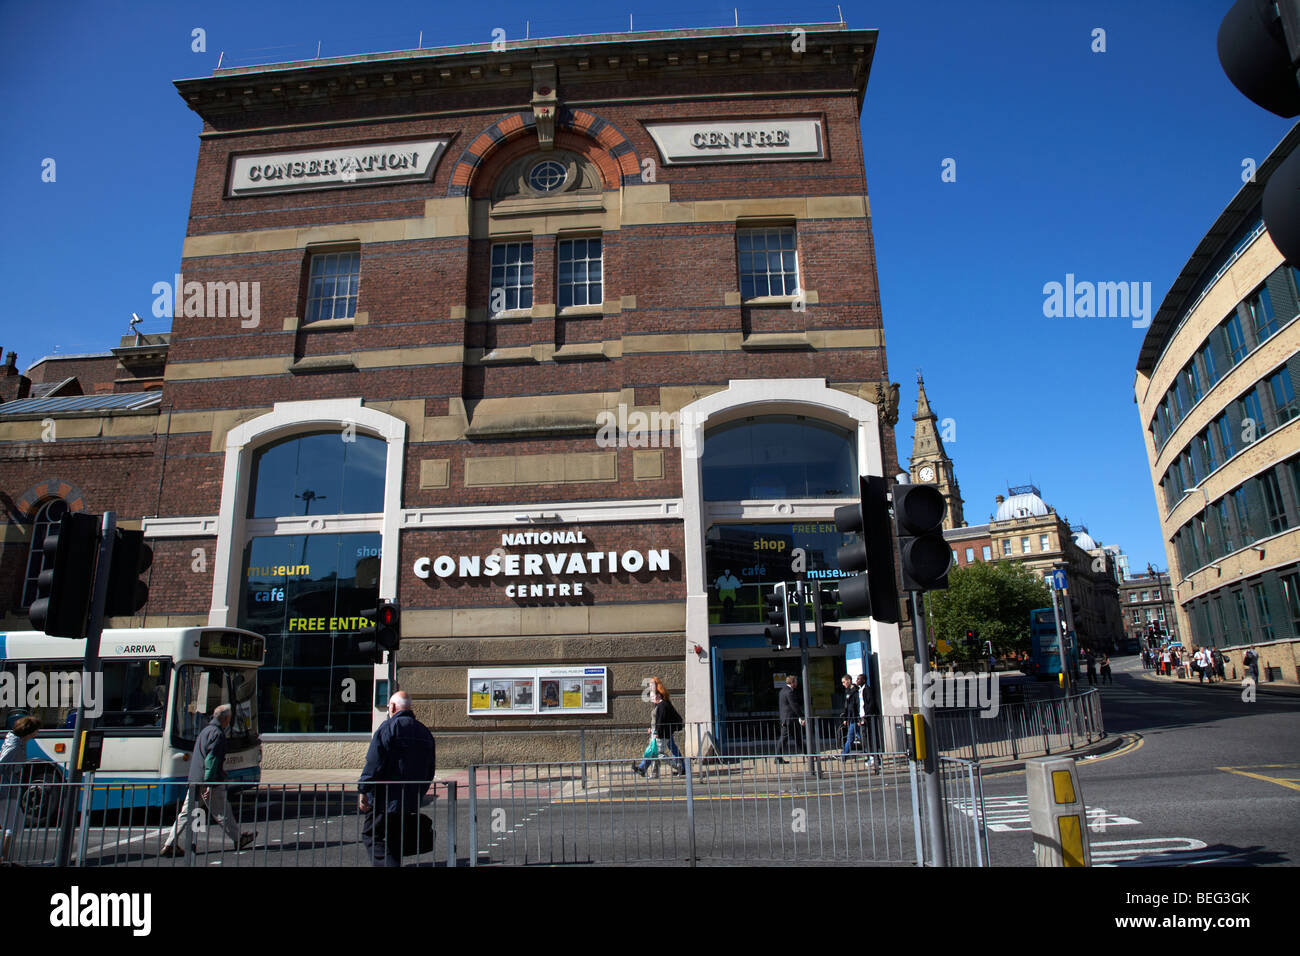 the national conservation centre in liverpool city centre based in the former midland railway goods offices merseyside - Stock Image